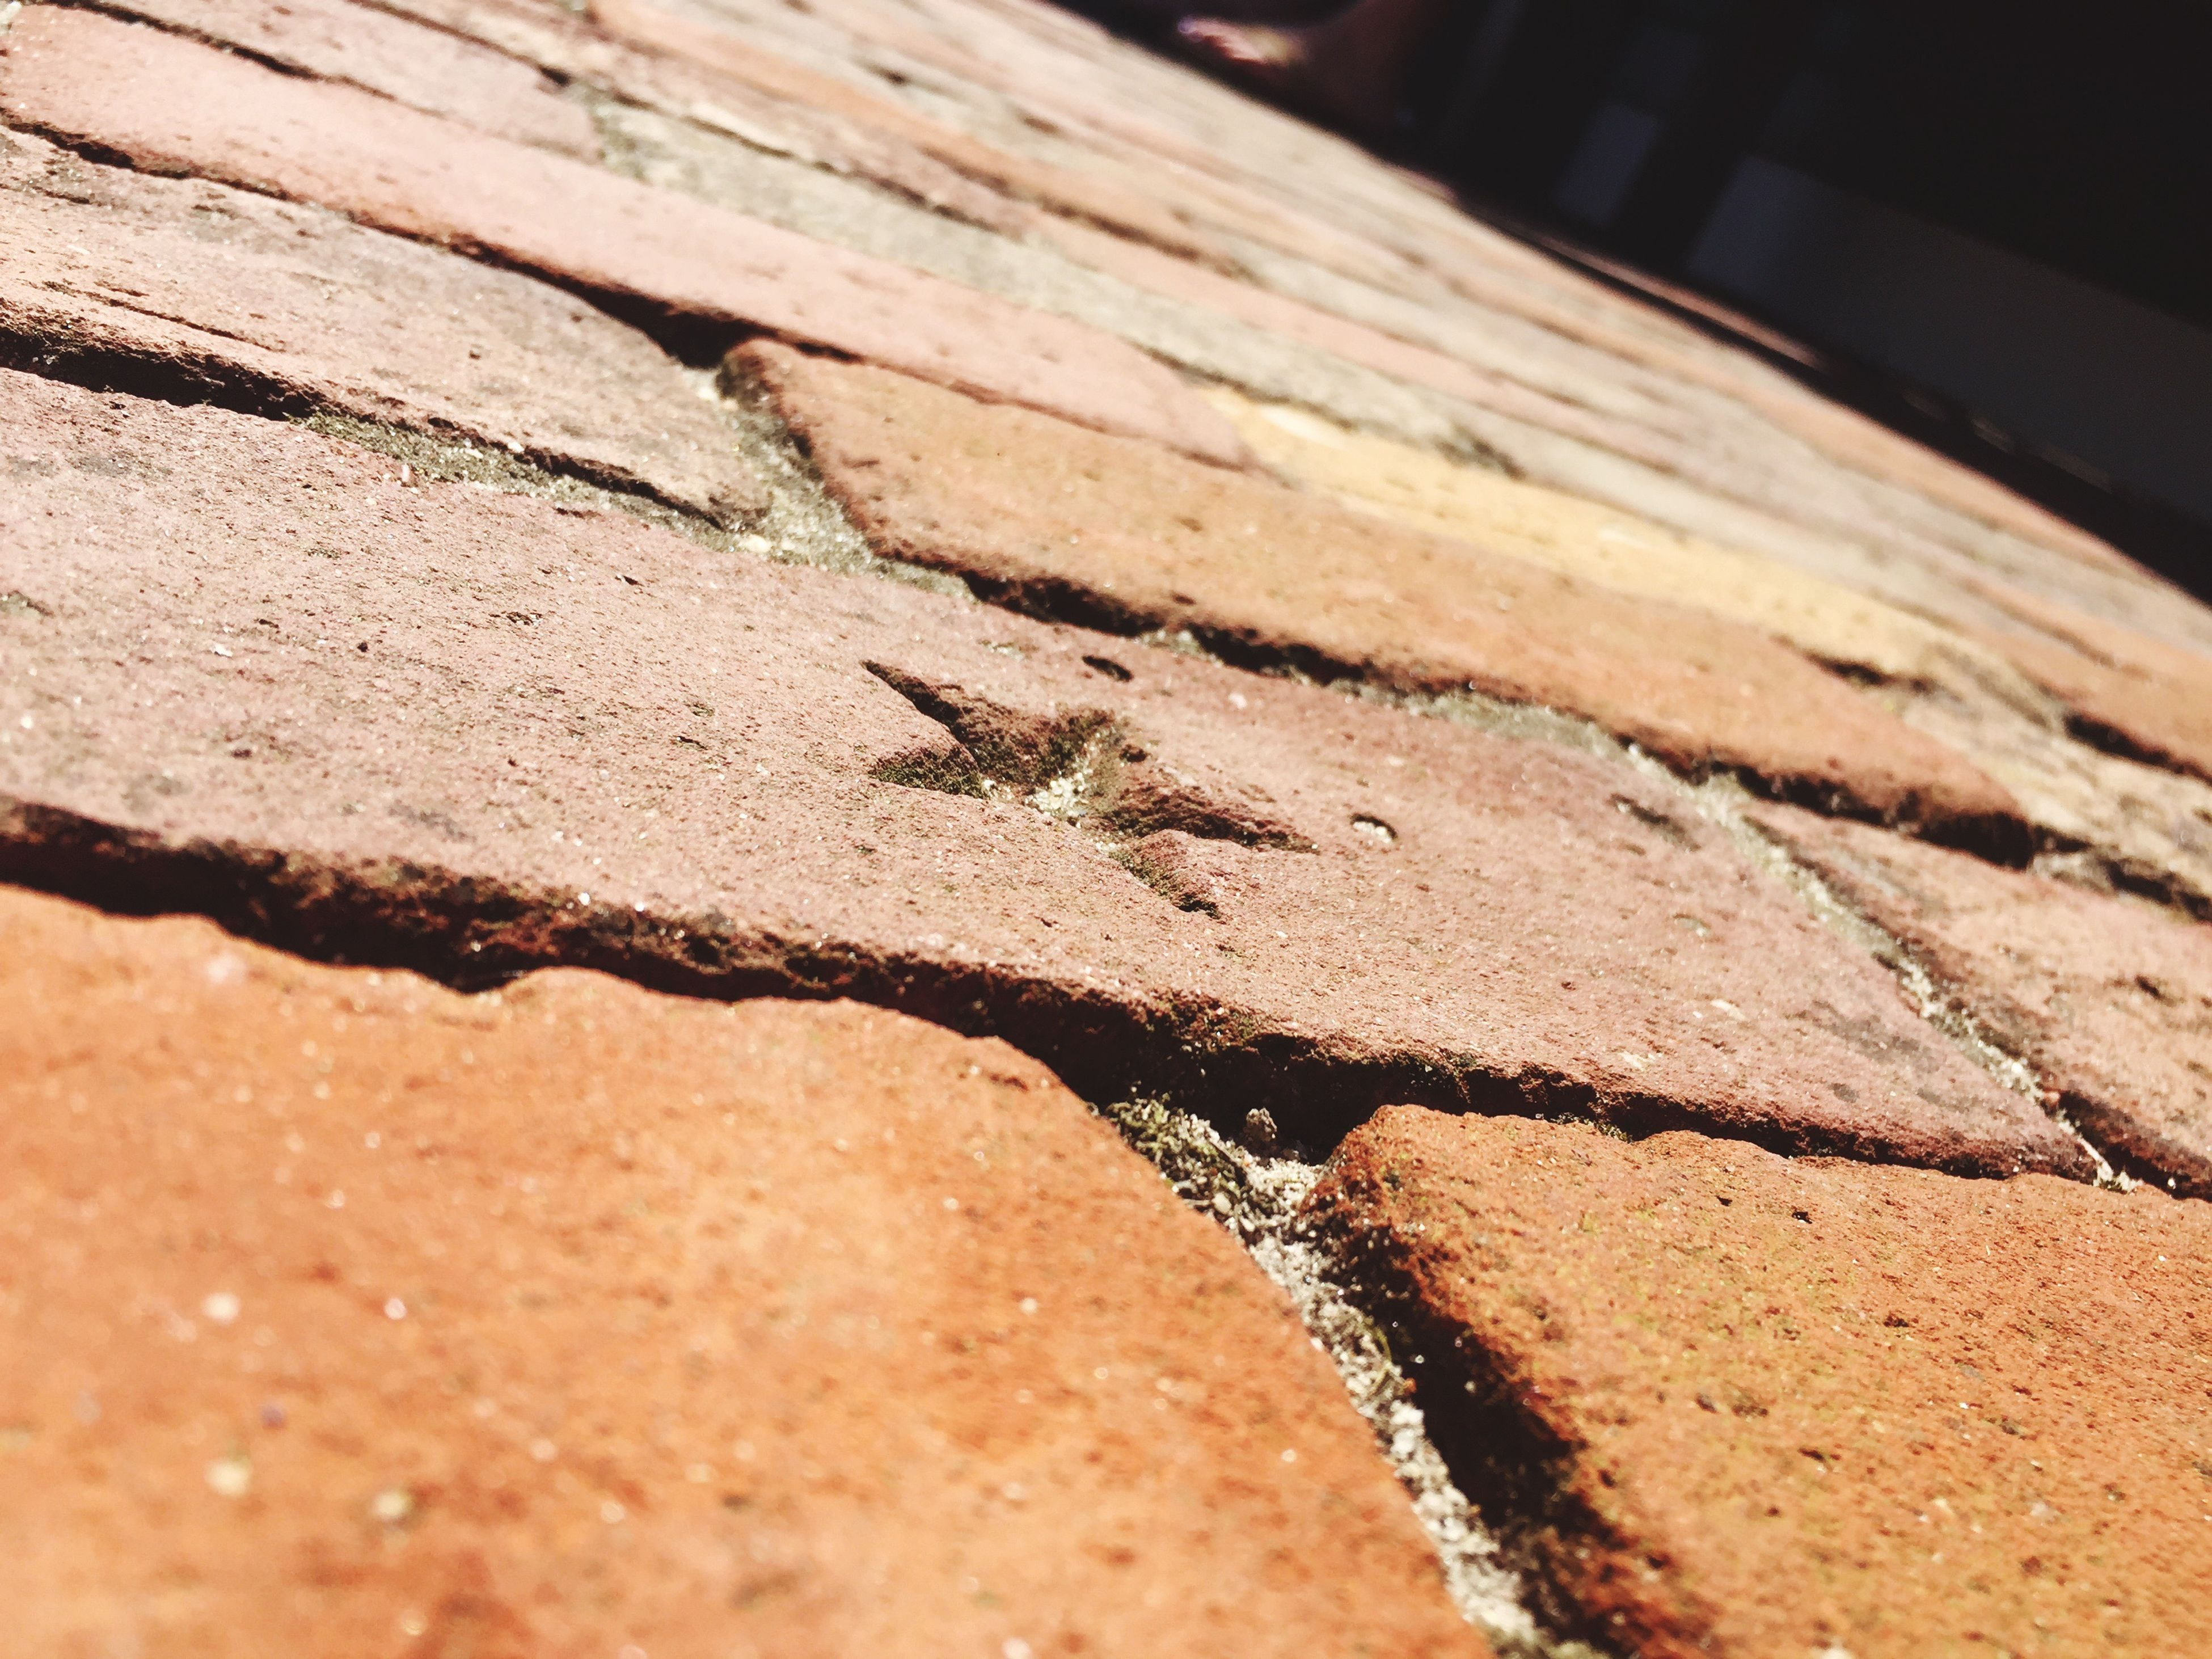 textured, close-up, rough, backgrounds, full frame, selective focus, cracked, detail, no people, brown, day, outdoors, natural pattern, focus on foreground, nature, surface level, abstract